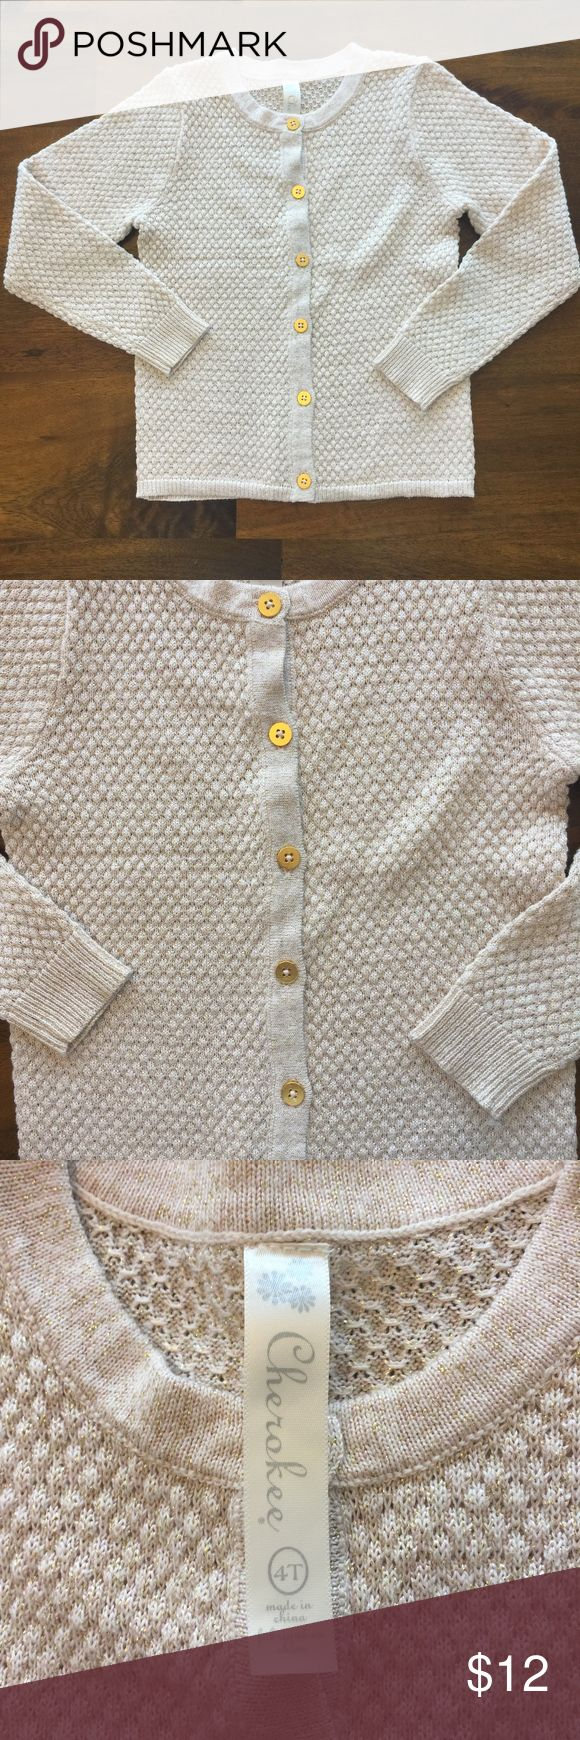 EUC Cherokee Gold Cardigan Size 4T EUC Cherokee gold cardigan. This is in perfect condition and only worn a couple times. Absolutely no signs of wear and from a smoke free and pet free home. Cherokee Shirts & Tops Sweaters